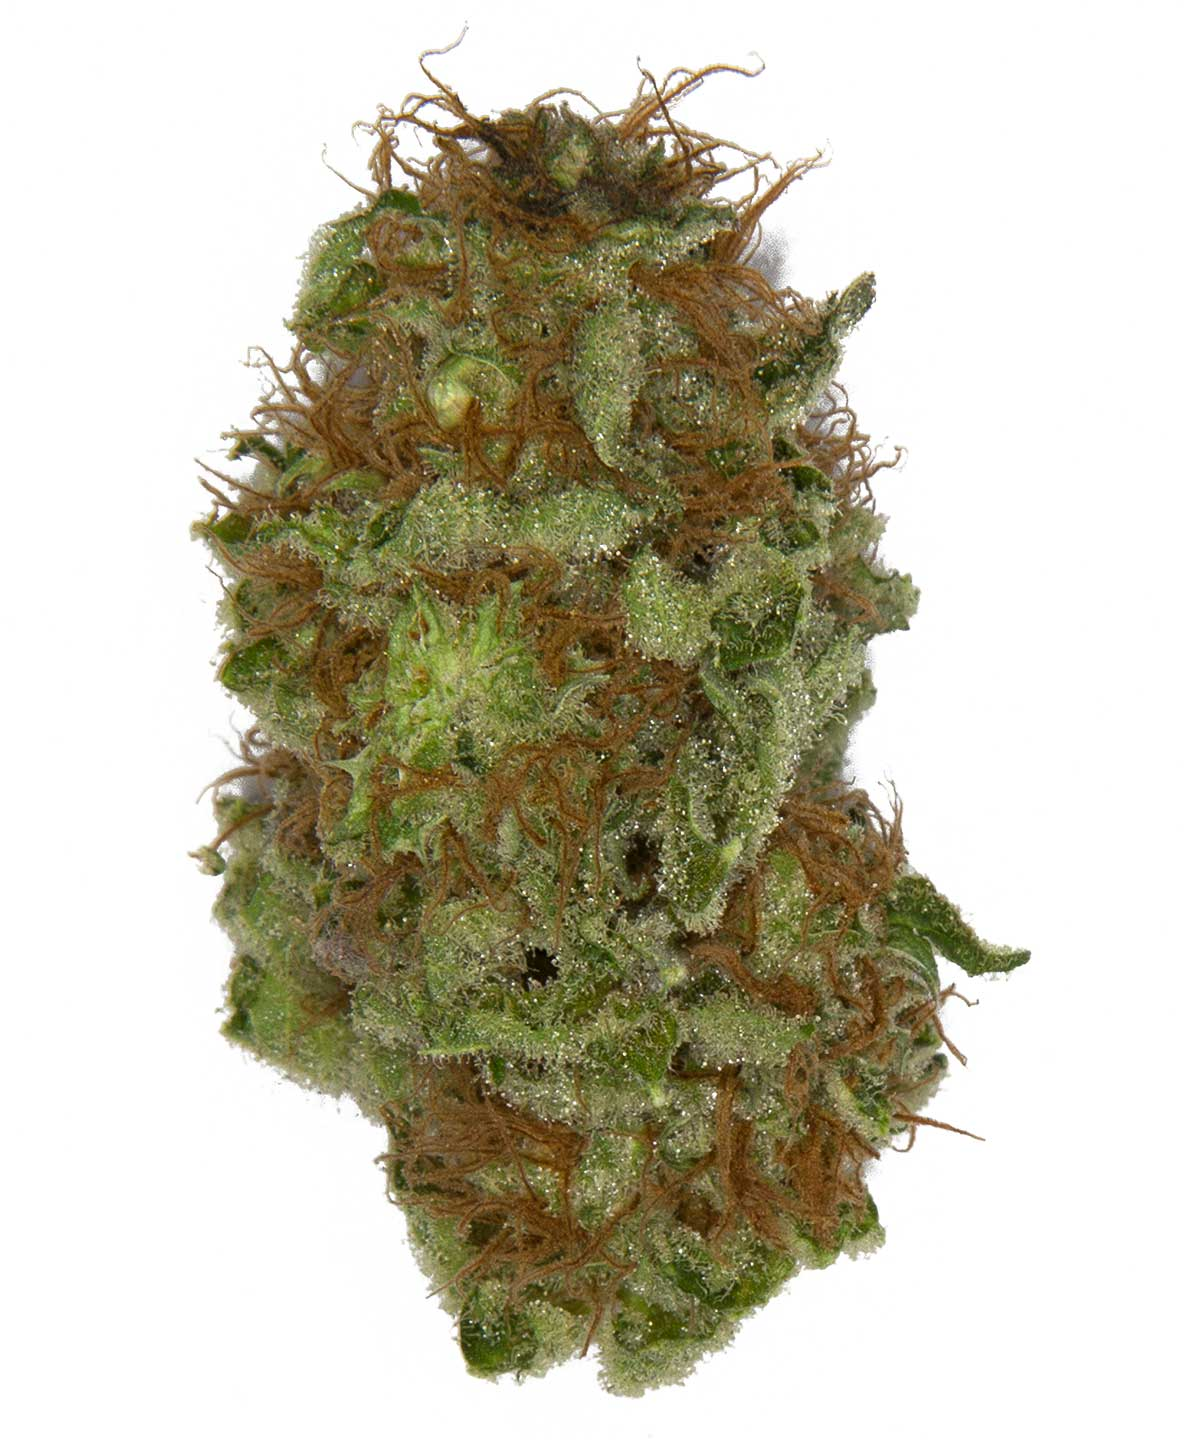 weed maps com with Master Kush on Cannabis Begeistert Investoren Das 8 Milliarden Dollar Geschaeft Cannabis Investors Growing Faster Than The Deals further Sharing Is Caring 2 furthermore Royal Kush additionally Hardglue Shatter West Coast Cure  trashed together with Weed In Colorado Is Be ing Really Cheap.